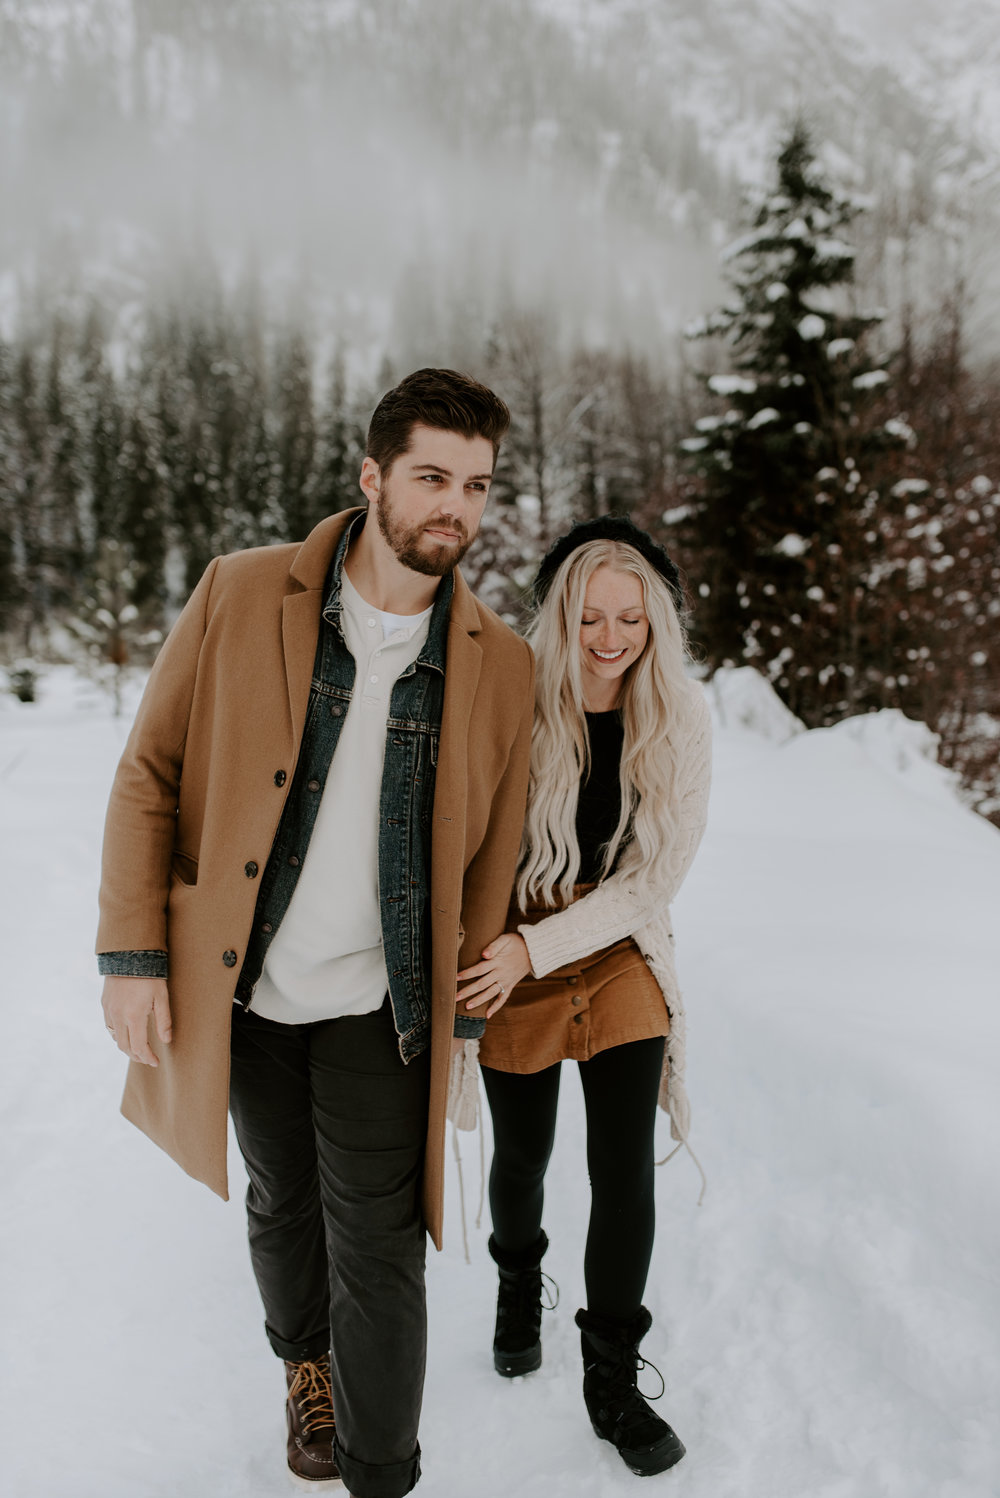 PNW adventure elopement photographer. Winter session in Leavenworth.